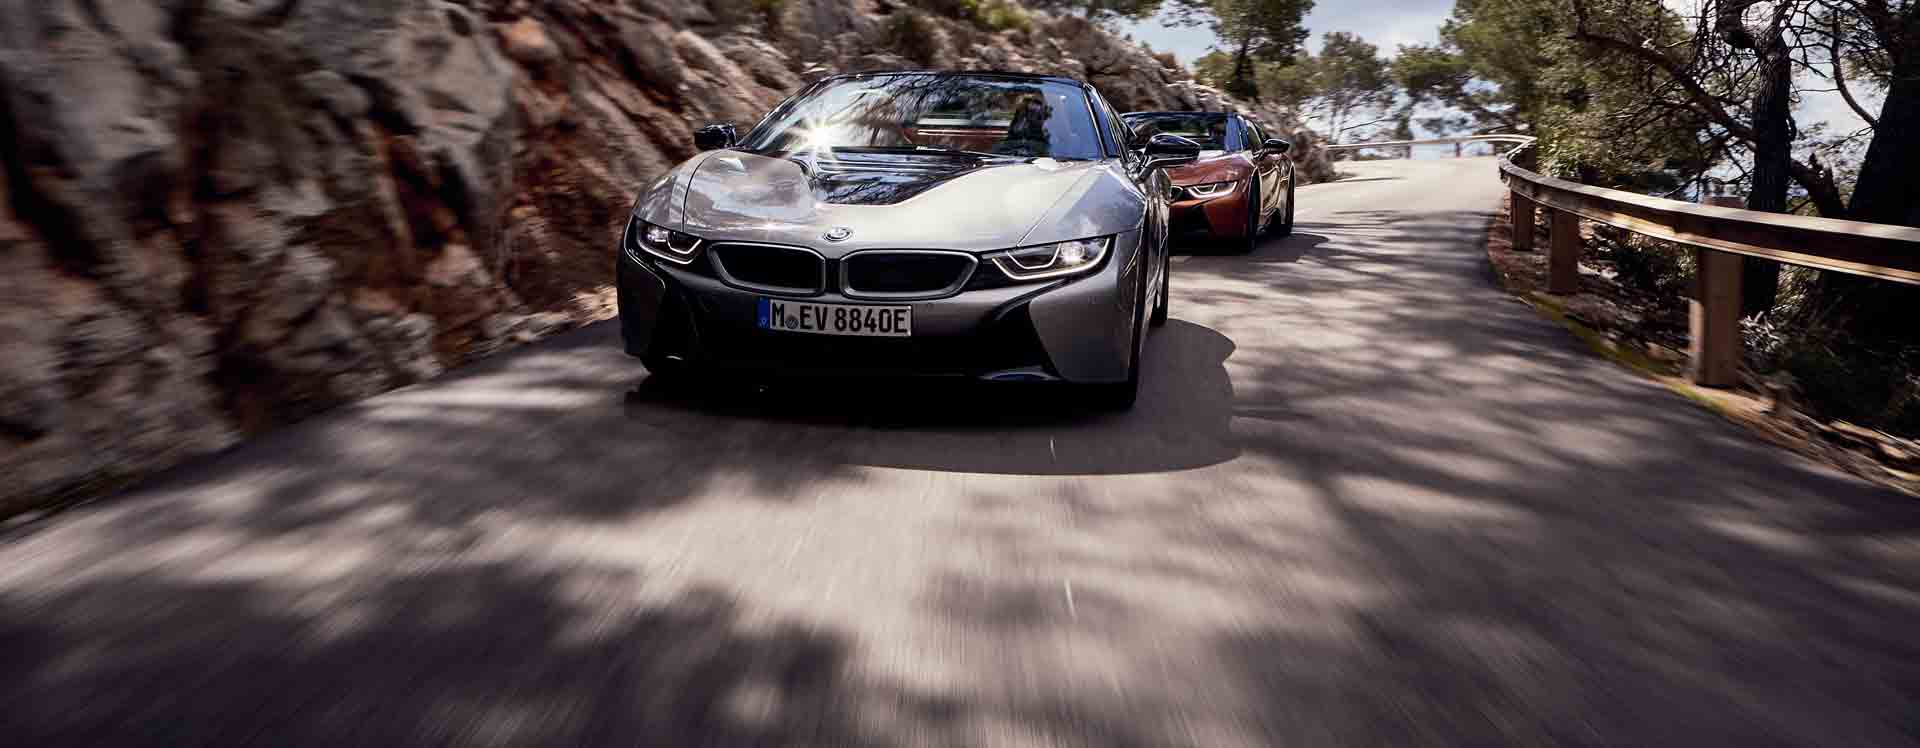 Bmw I8 Mpg Range Charging And Refueling Guide